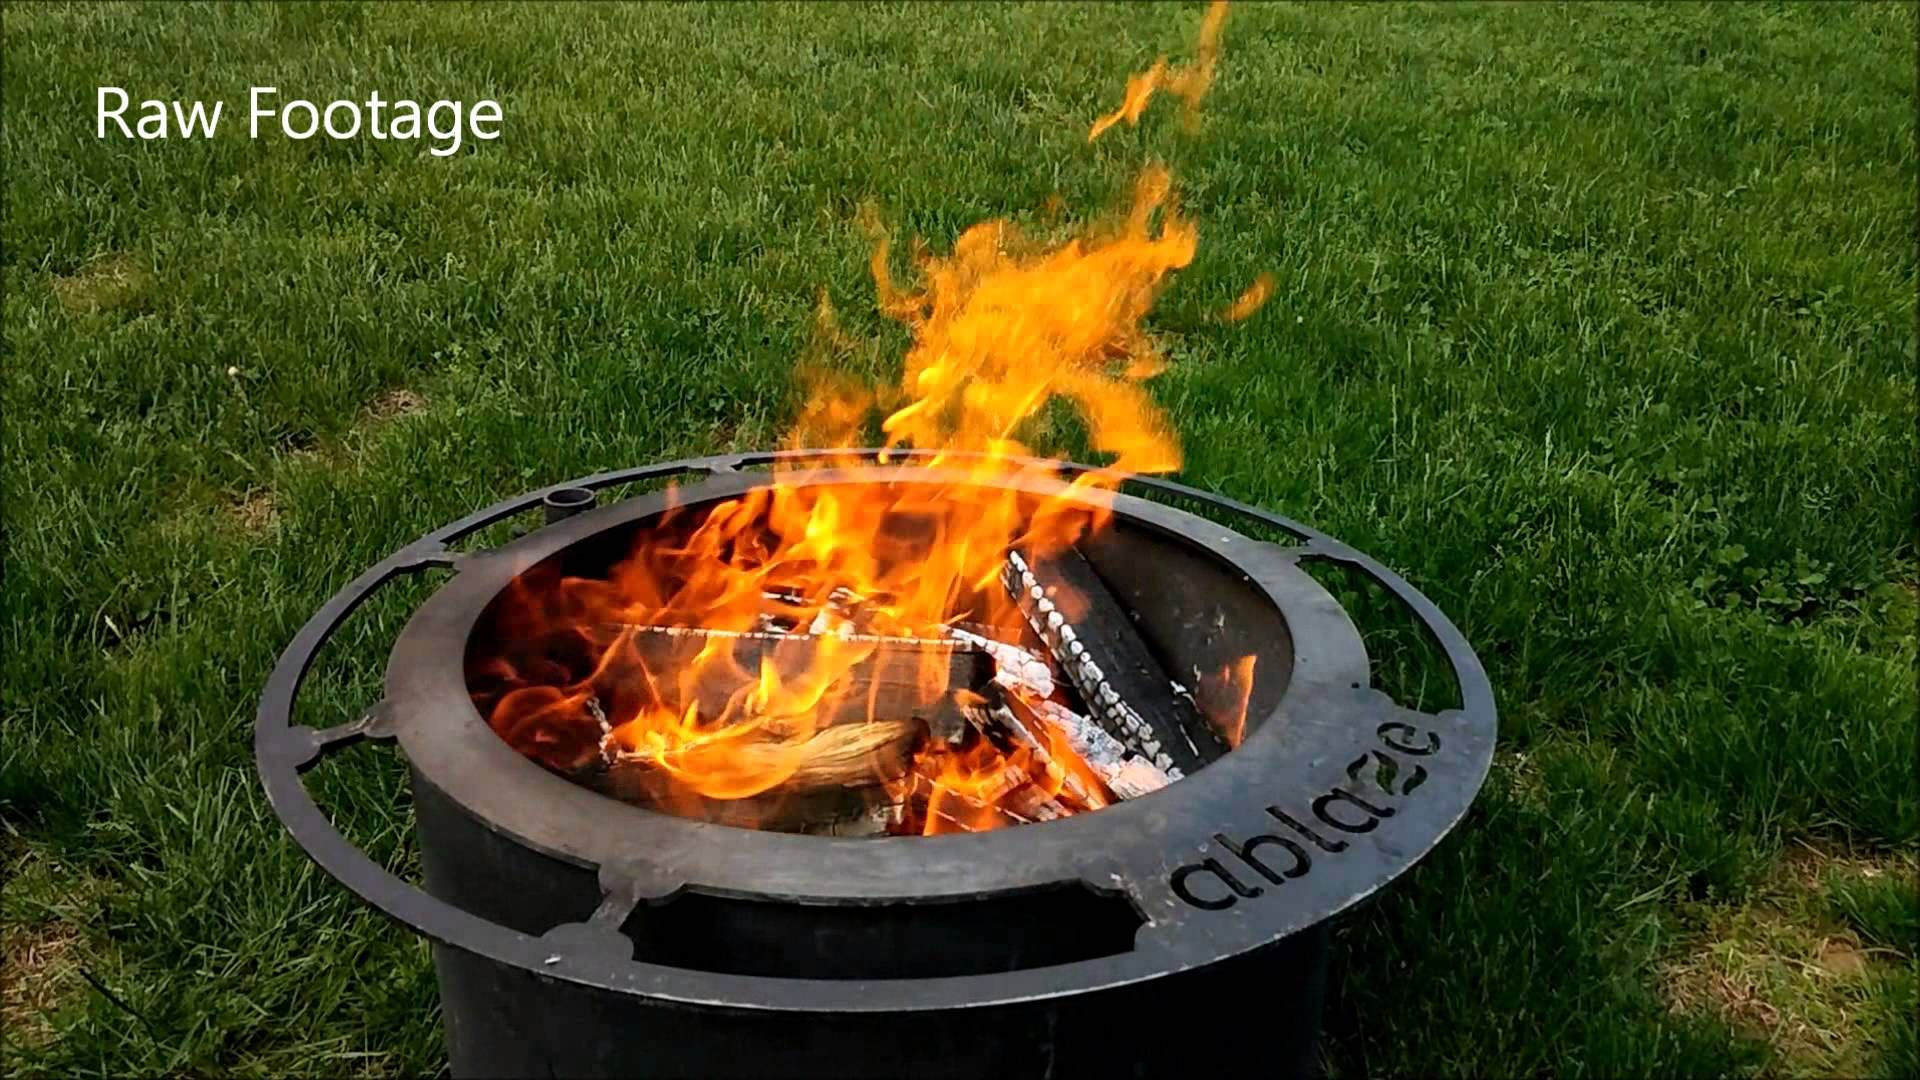 love wood fires but hate the smoke check out the ablaze fire pit